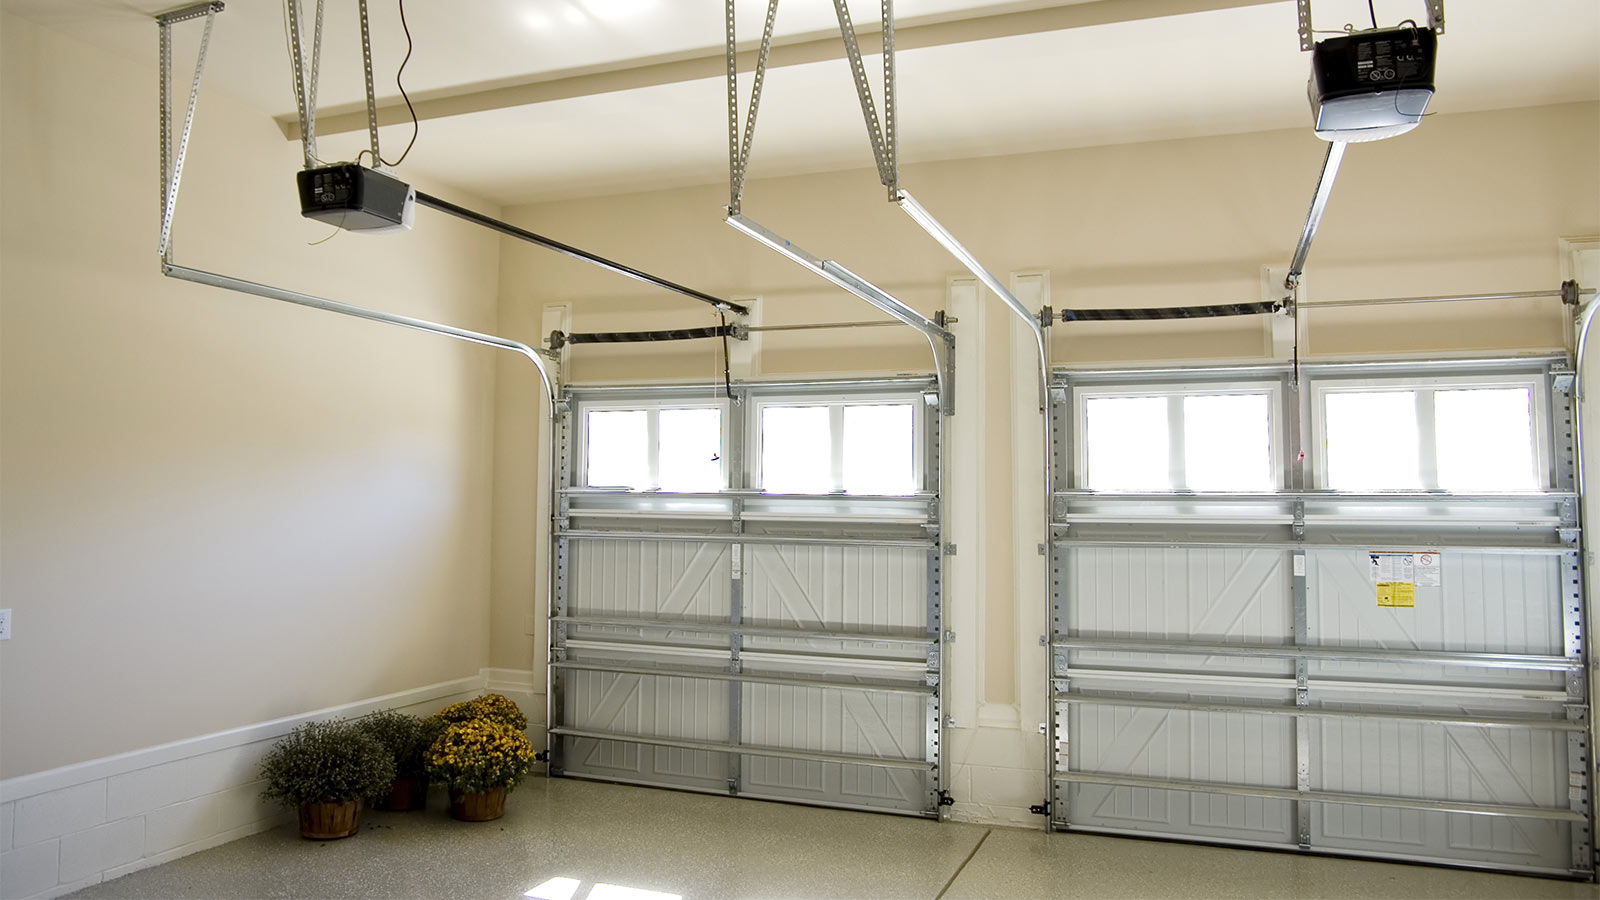 Sectional Garage Doors from Shop Front Shutters Rochford suppliers.